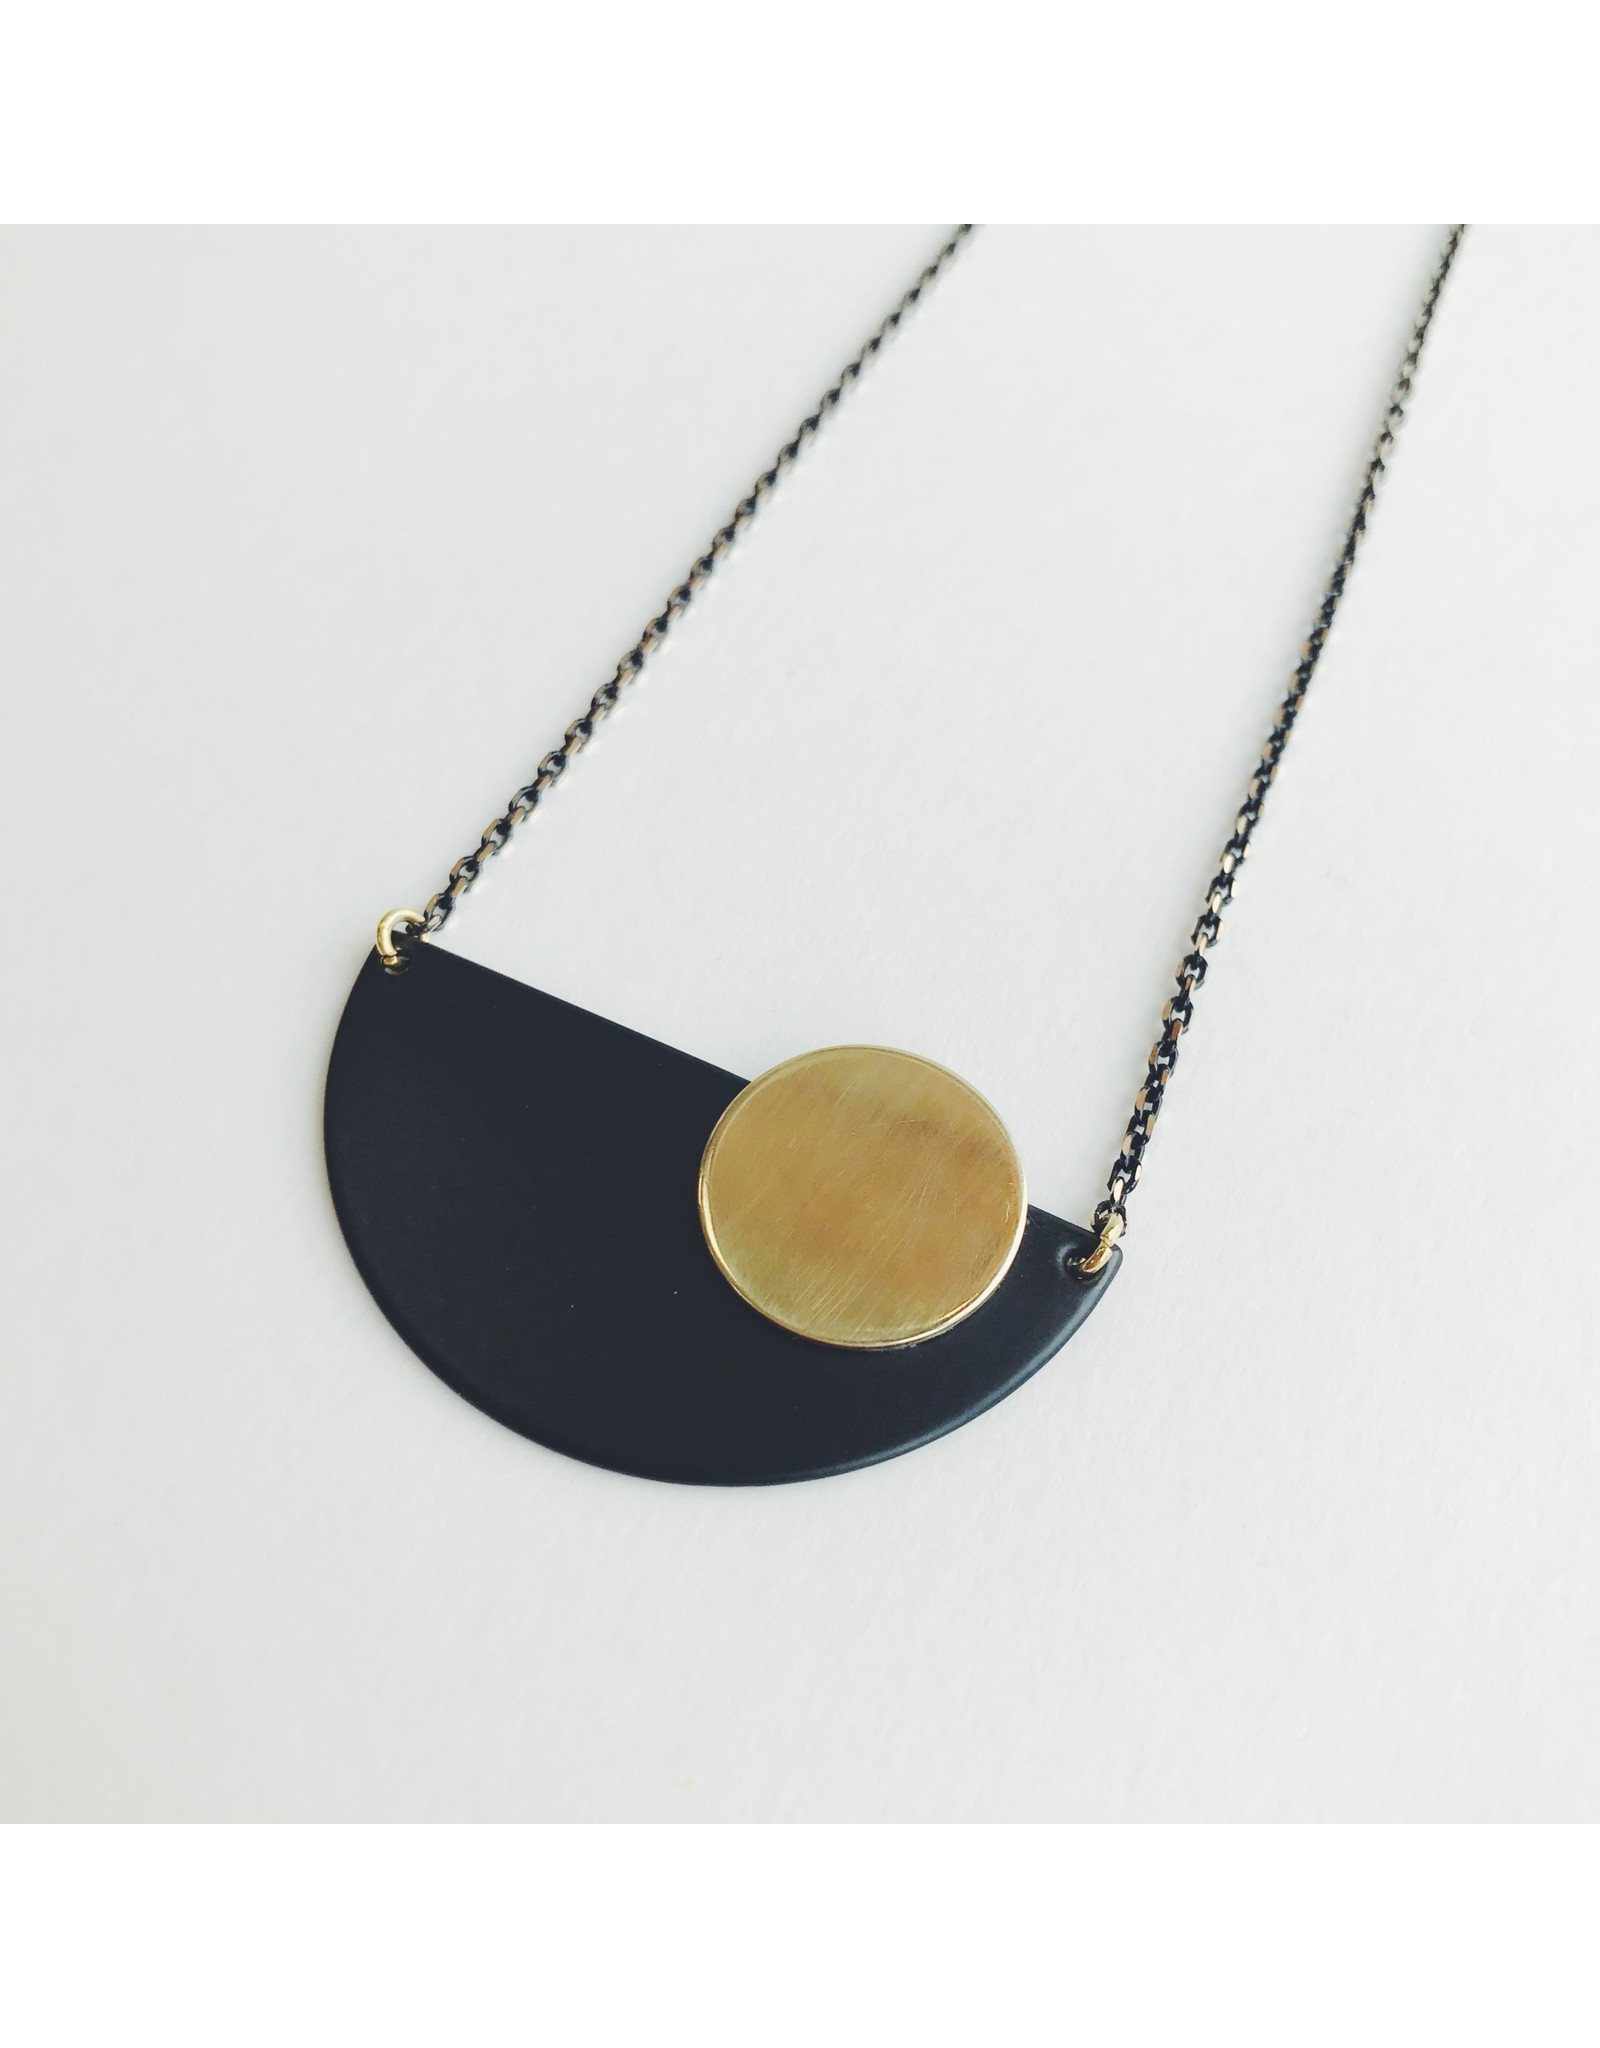 Necklace Black Crescent and Brass Disc